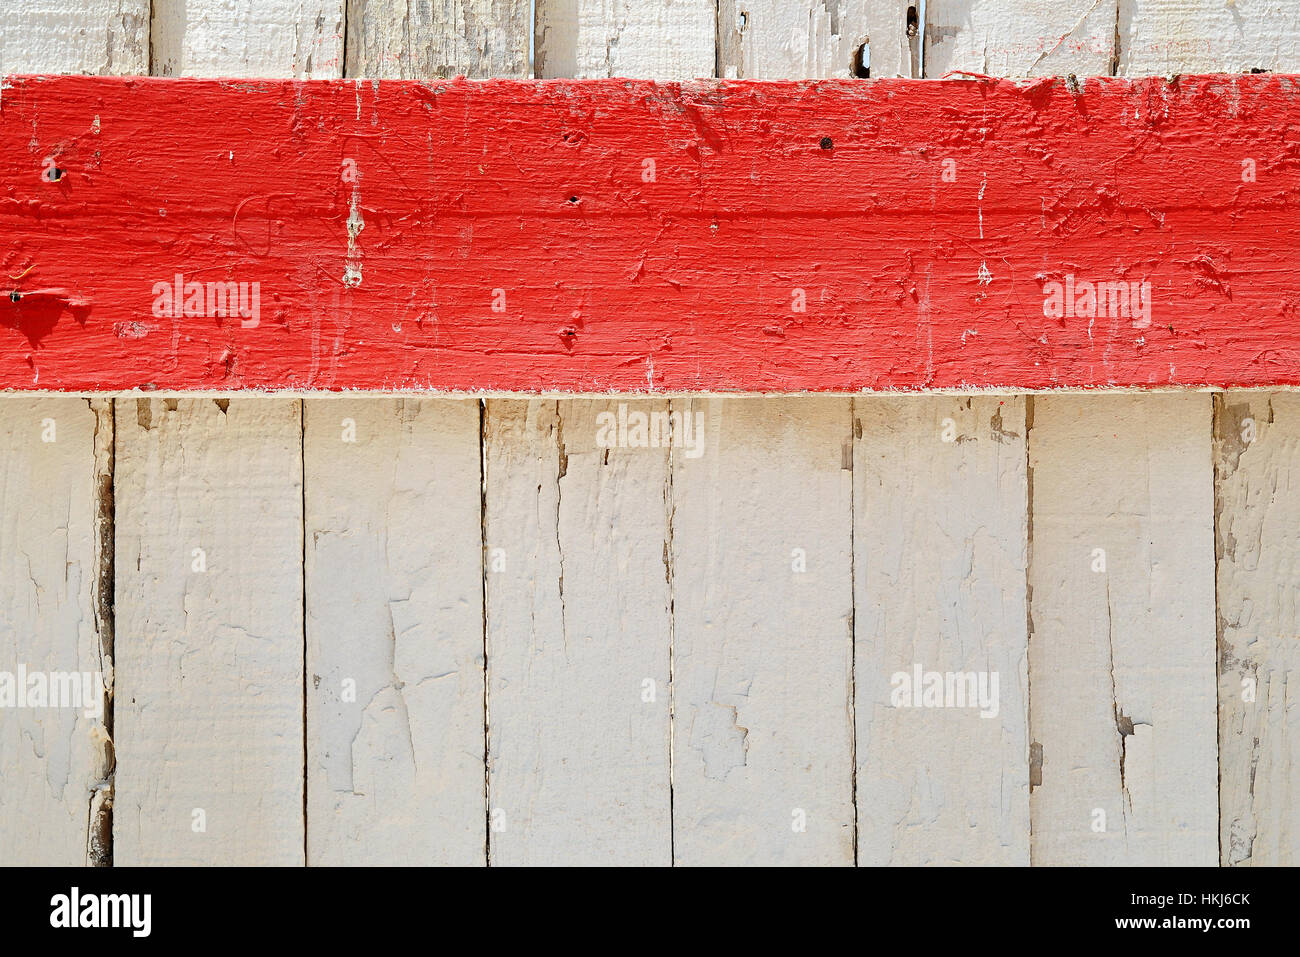 Horizontal red stripe of painted wooden board against white fence